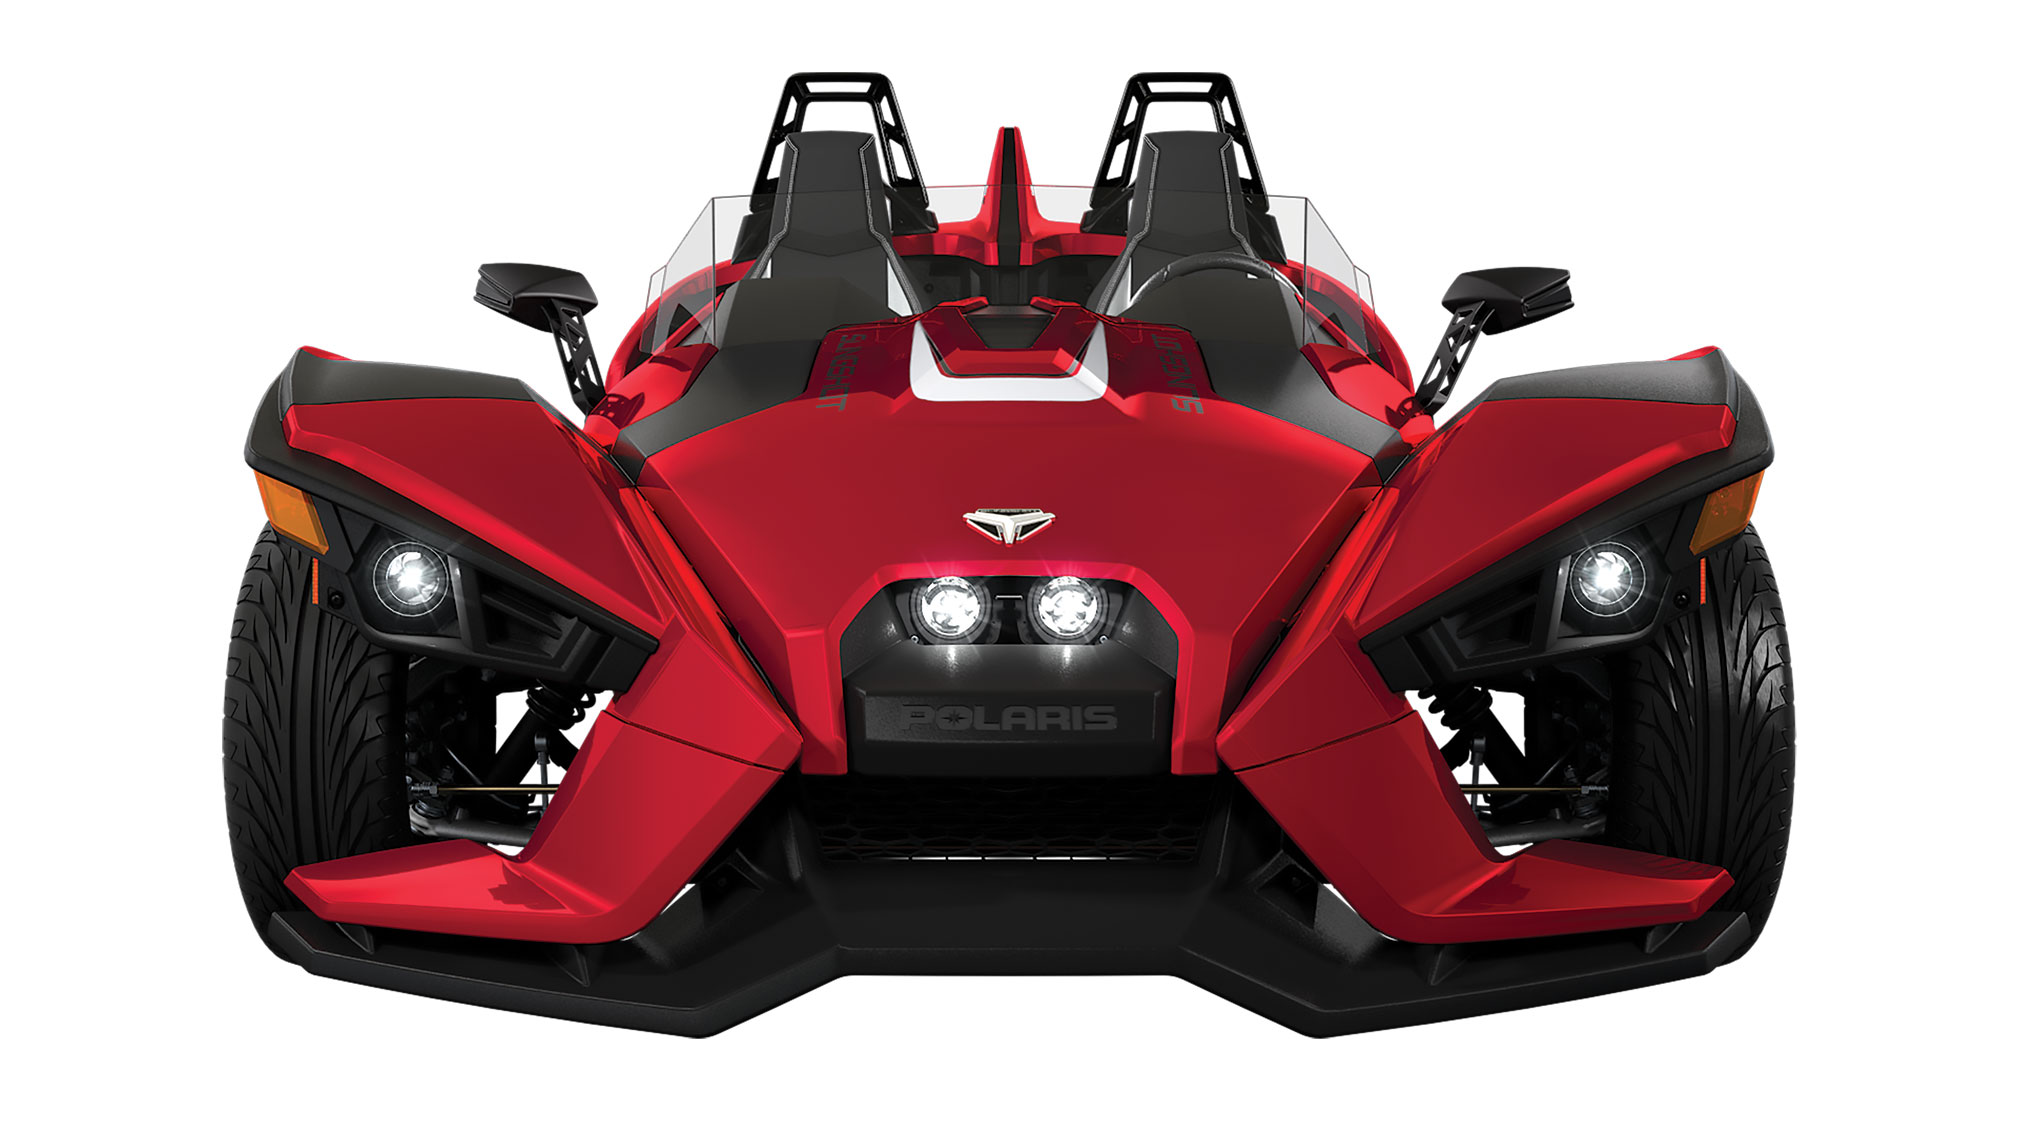 2018 Slingshot >> 2018 Polaris Slingshot SL Review - TotalMotorcycle